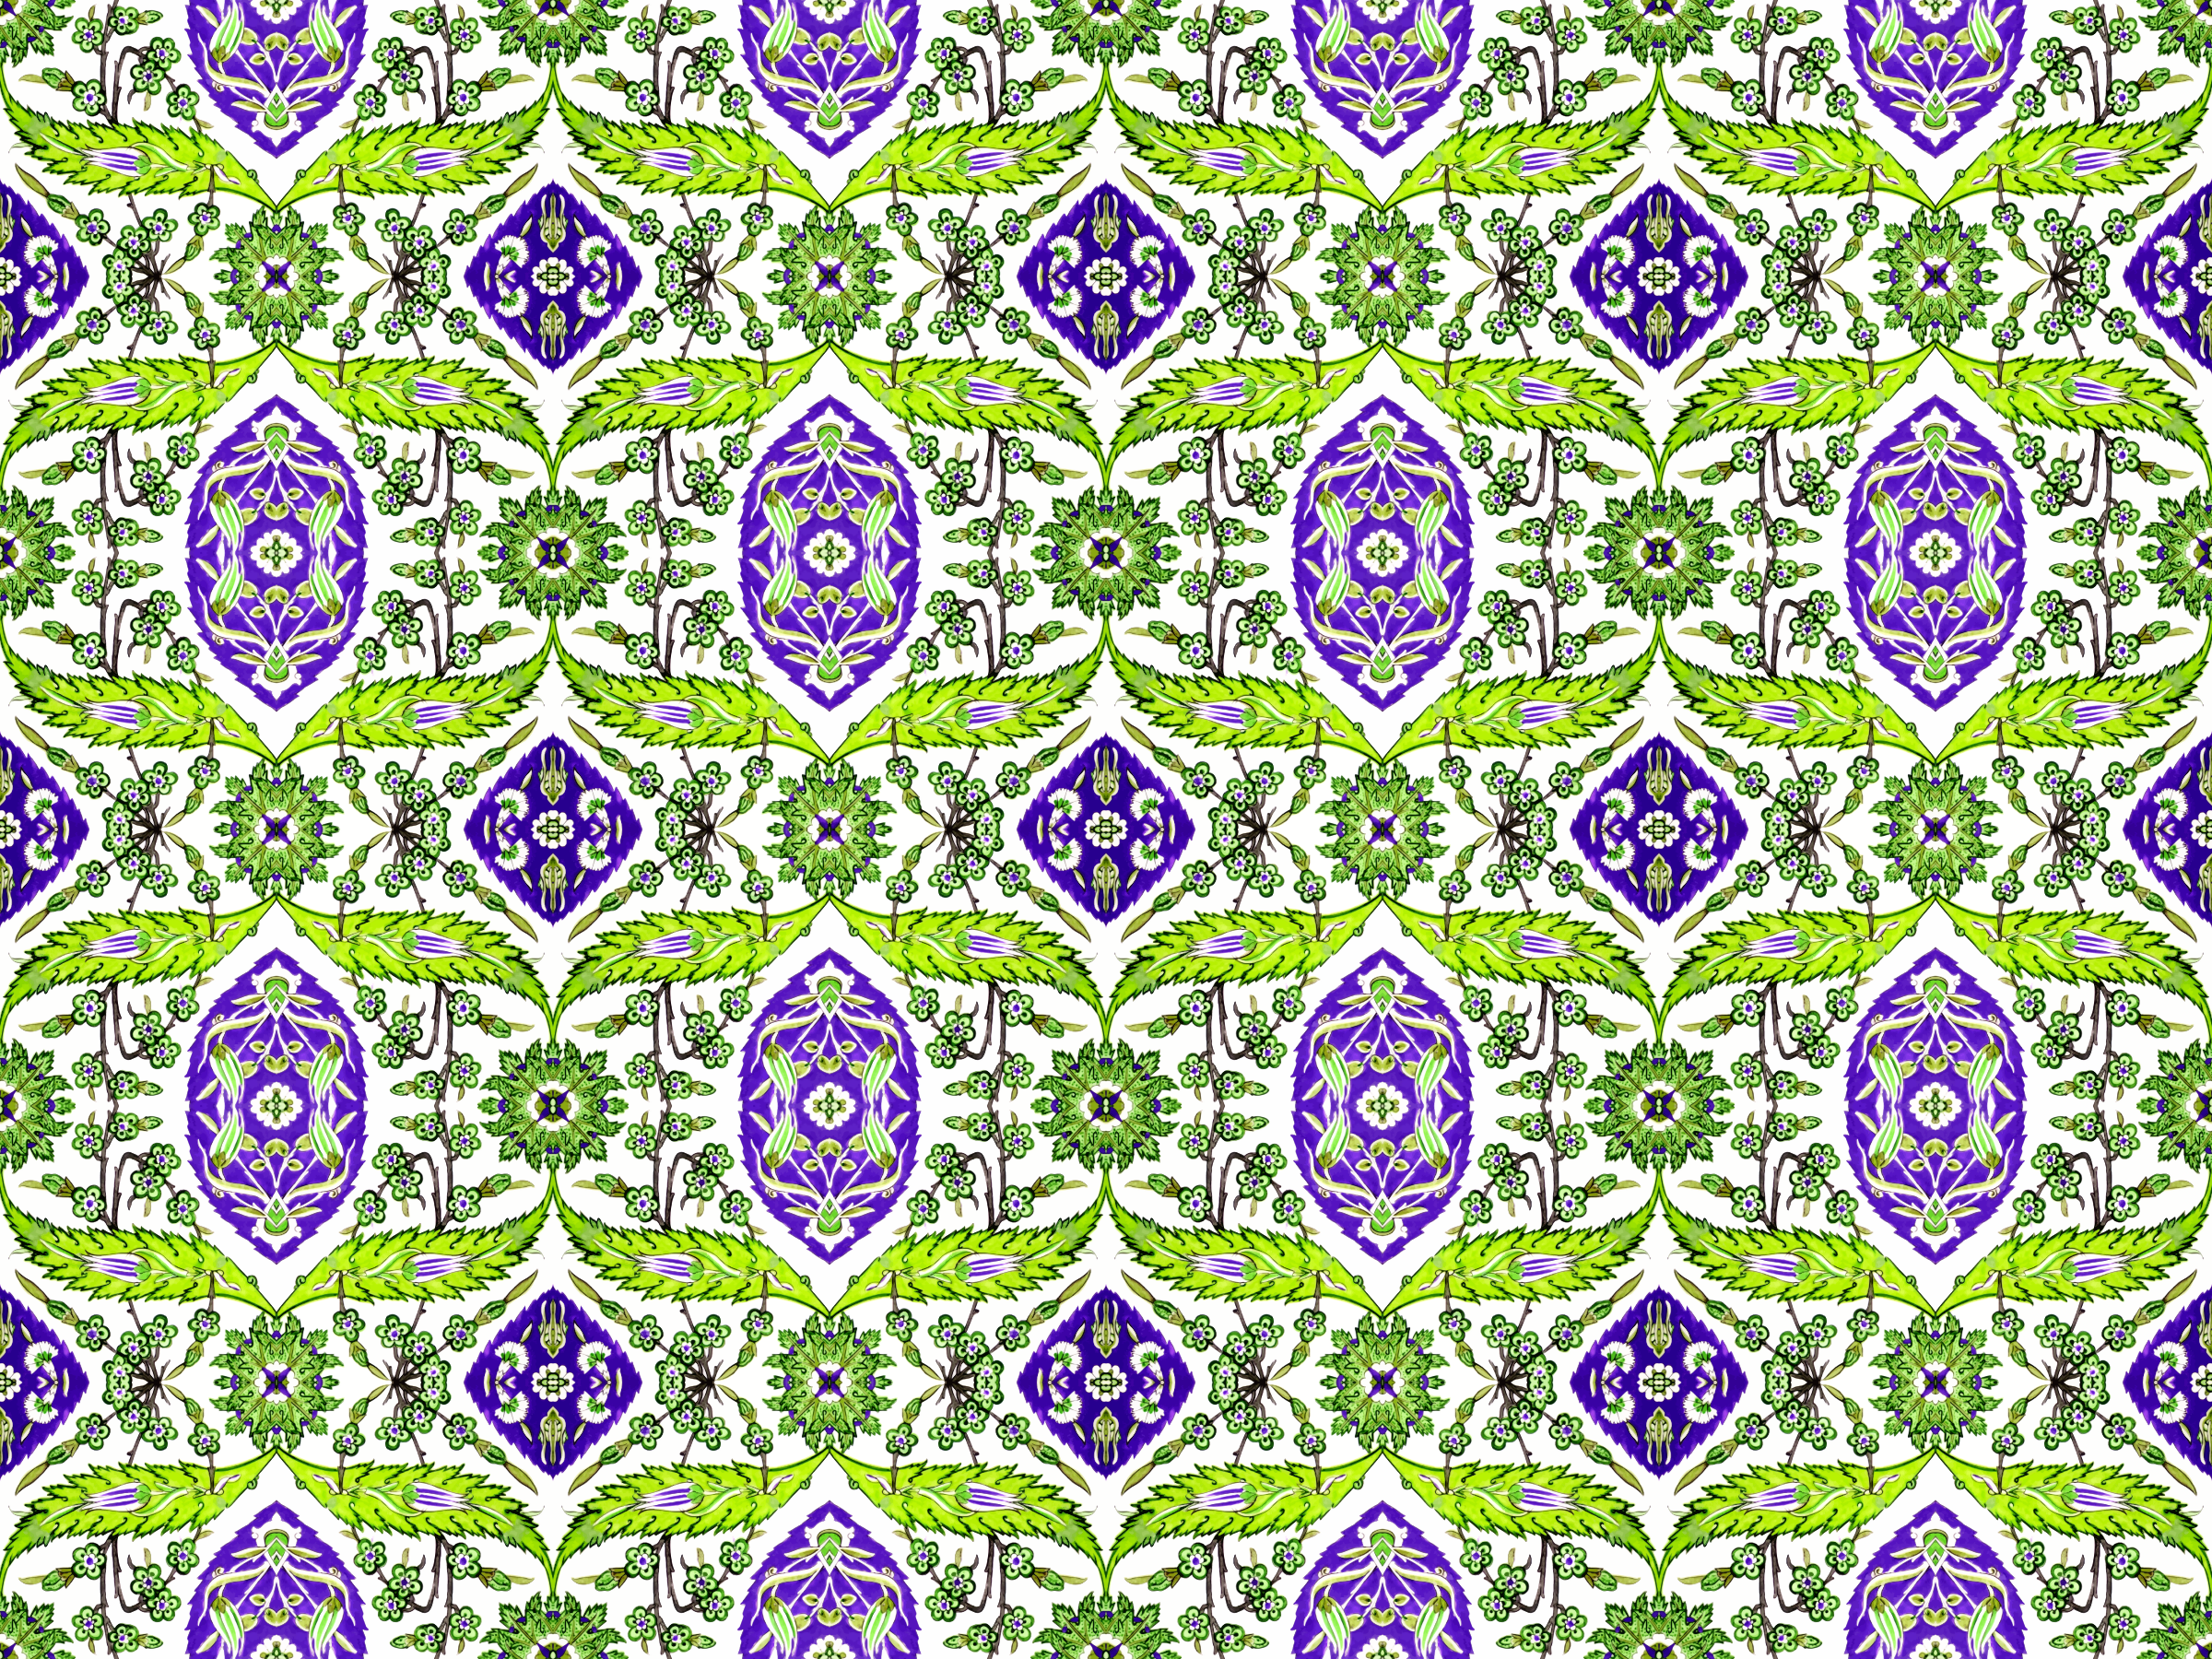 Floral pattern 6 (colour 3) by Firkin